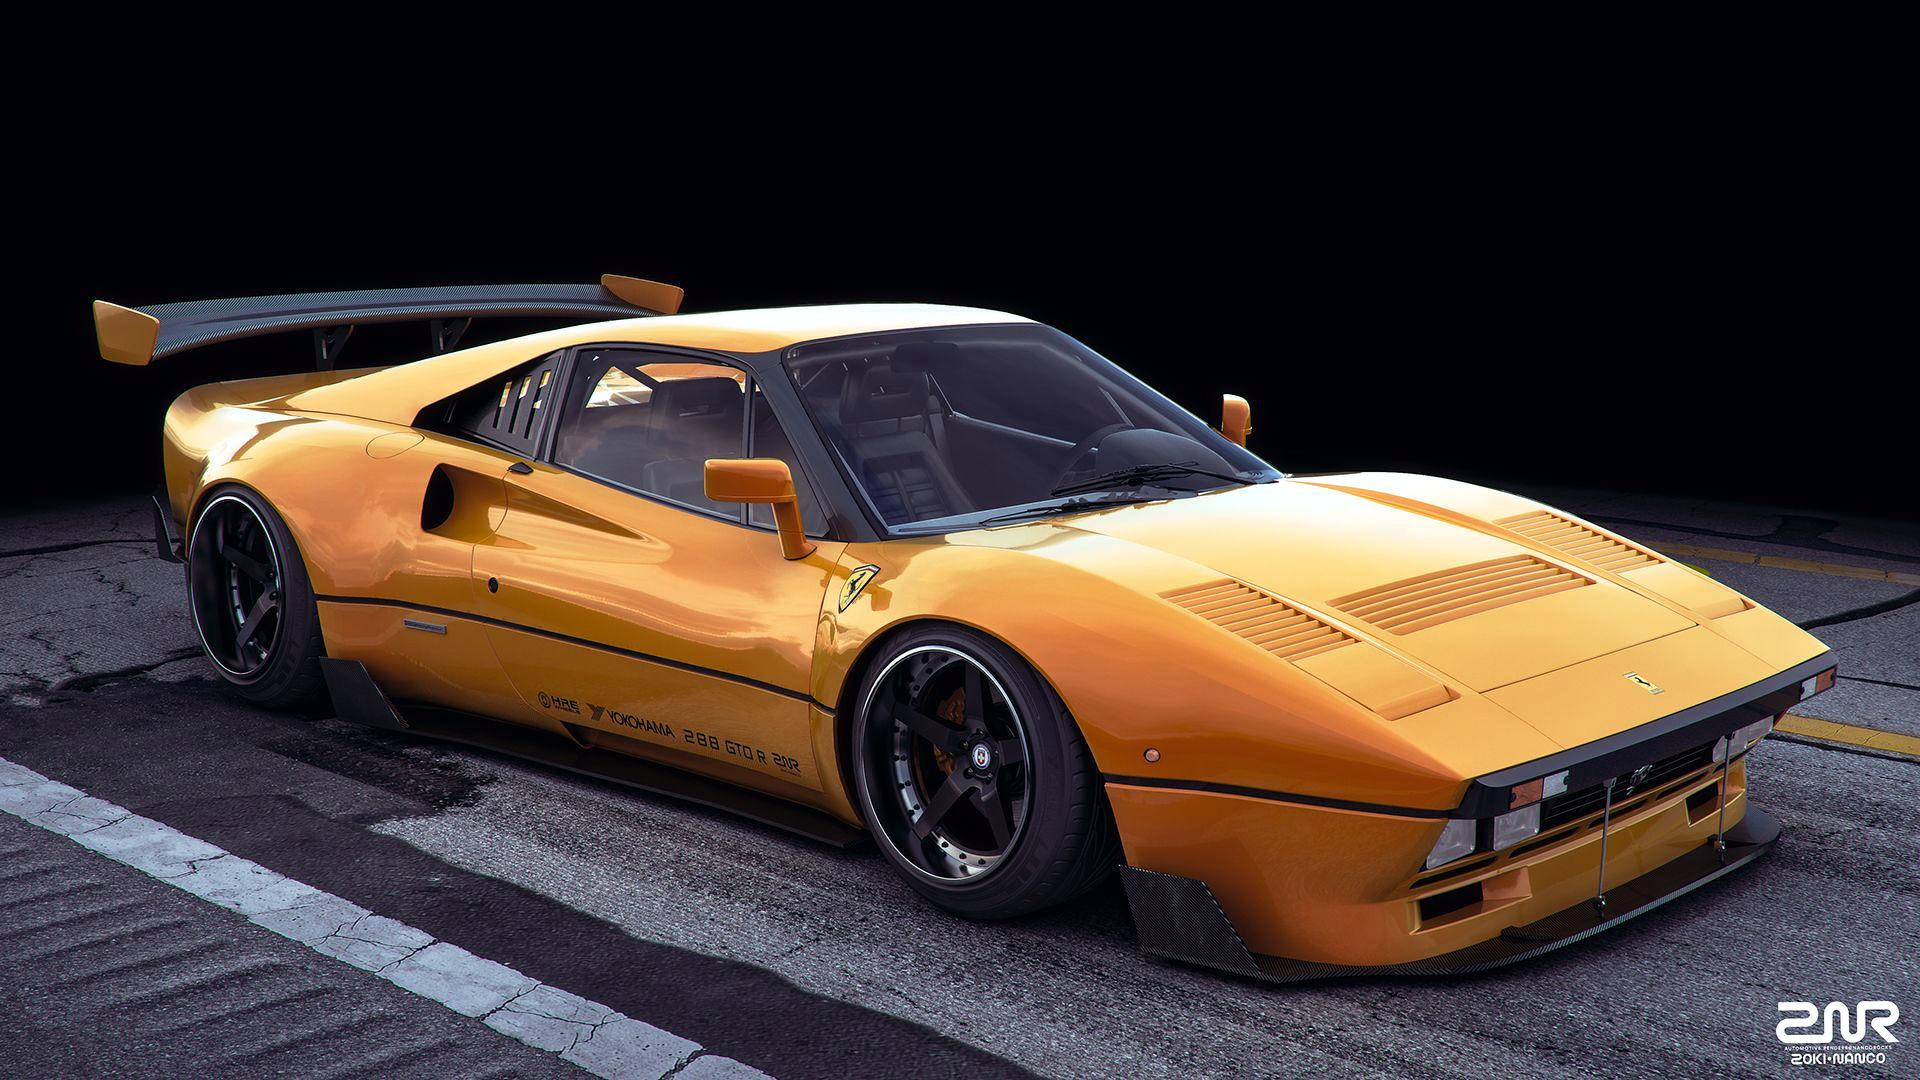 Audi Concept Car Wallpaper Ferrari 288 Gto R Provides A Whole New Perspective